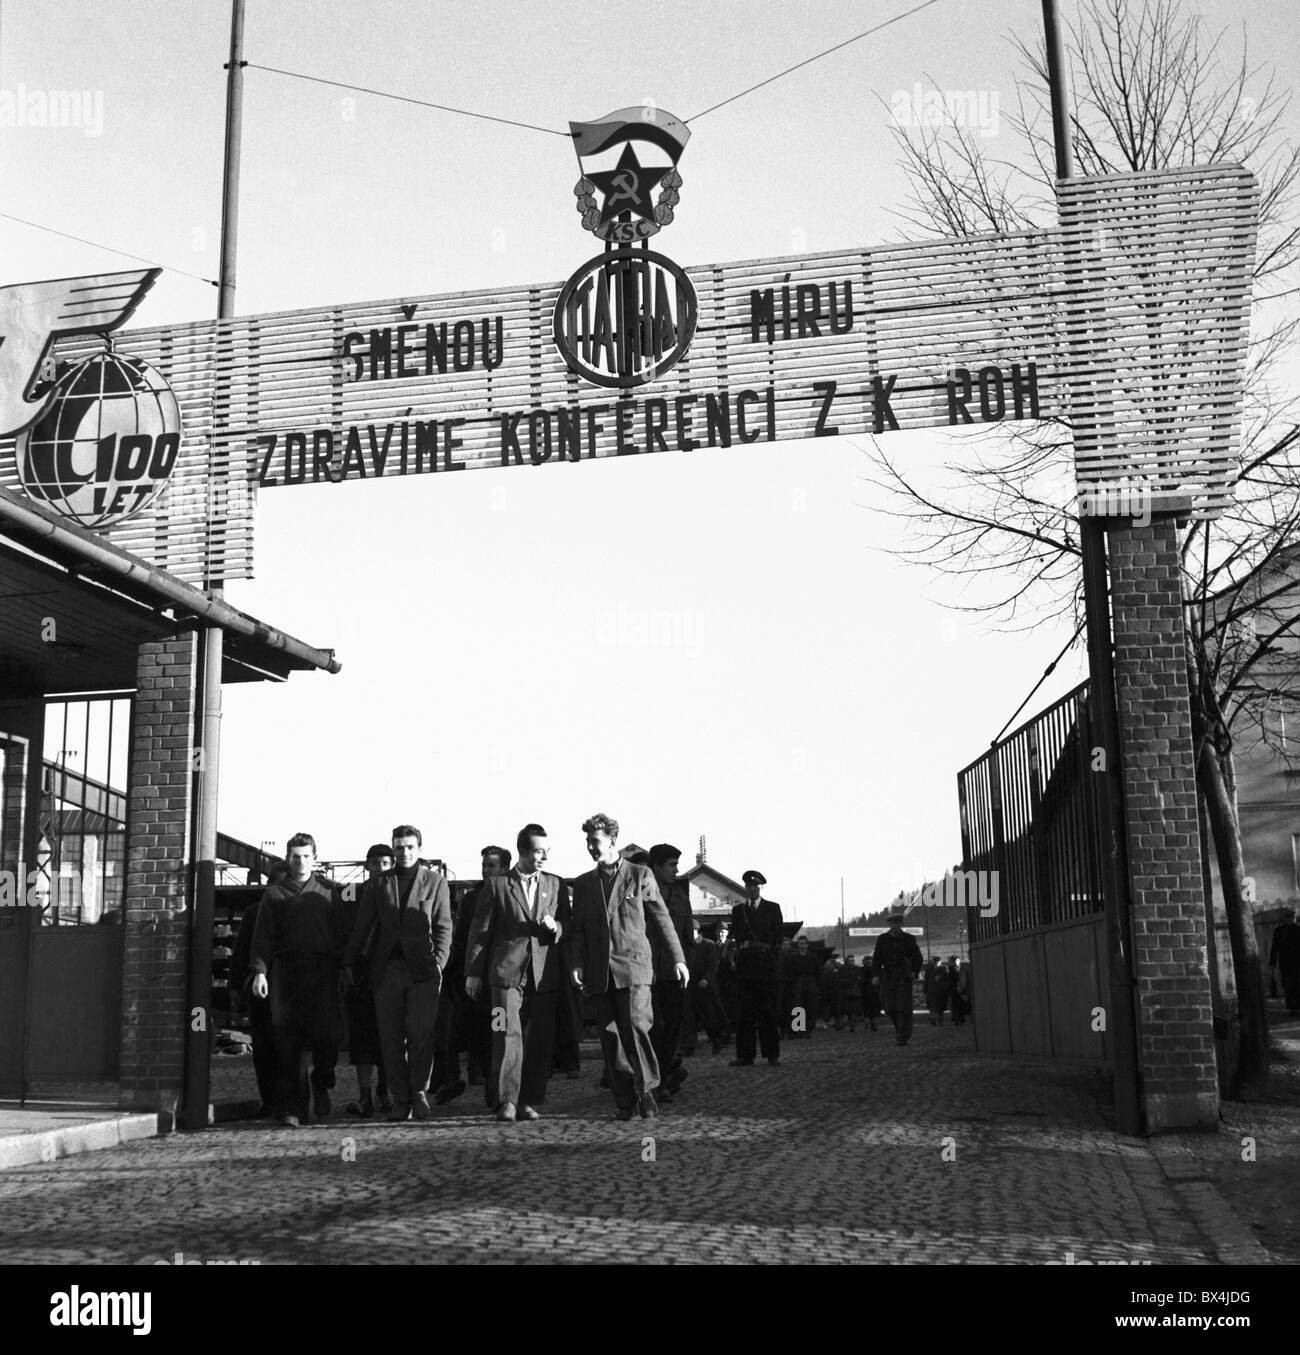 Koprivnice - Czechoslovakia, 1950.Tatra (a.k.a. Tatraplan) automobile plant workers going to their shift. CTK Vintage - Stock Image